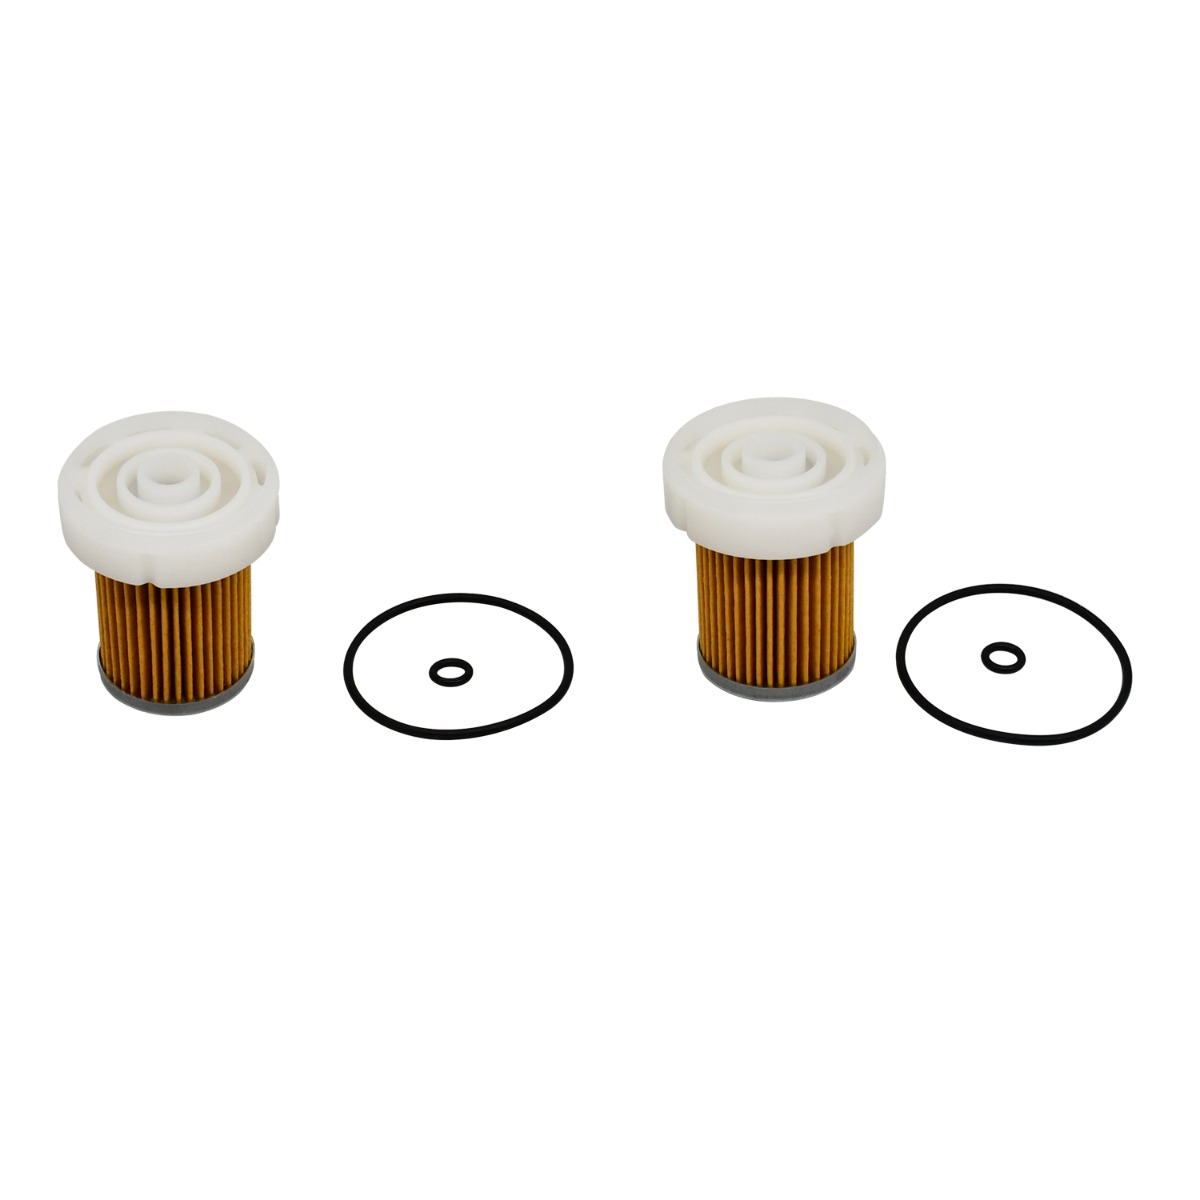 Fuel Filter 6A320-59930 2Pcs Compatible With Kubota Tractor B1410 B1610 B1710 B2110 B2110HDB B2301HSD B2320DT B2320DTN B2320DTWO B2320HSDN